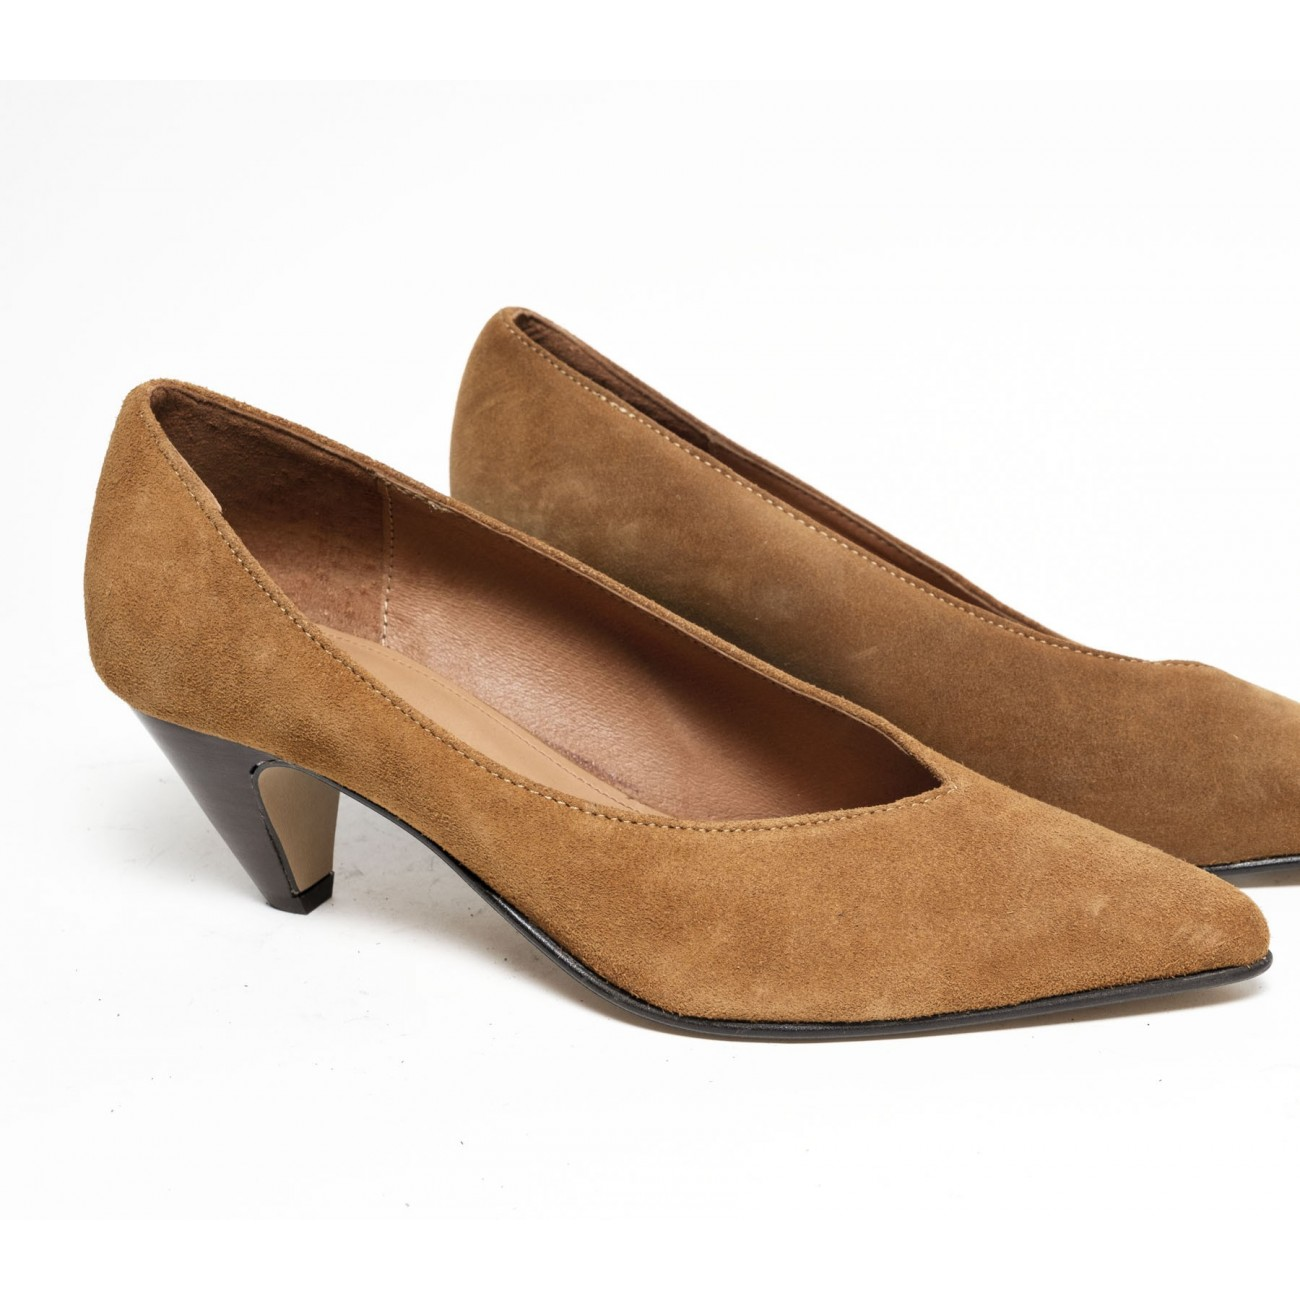 Maggie Suede Camel - Size 38